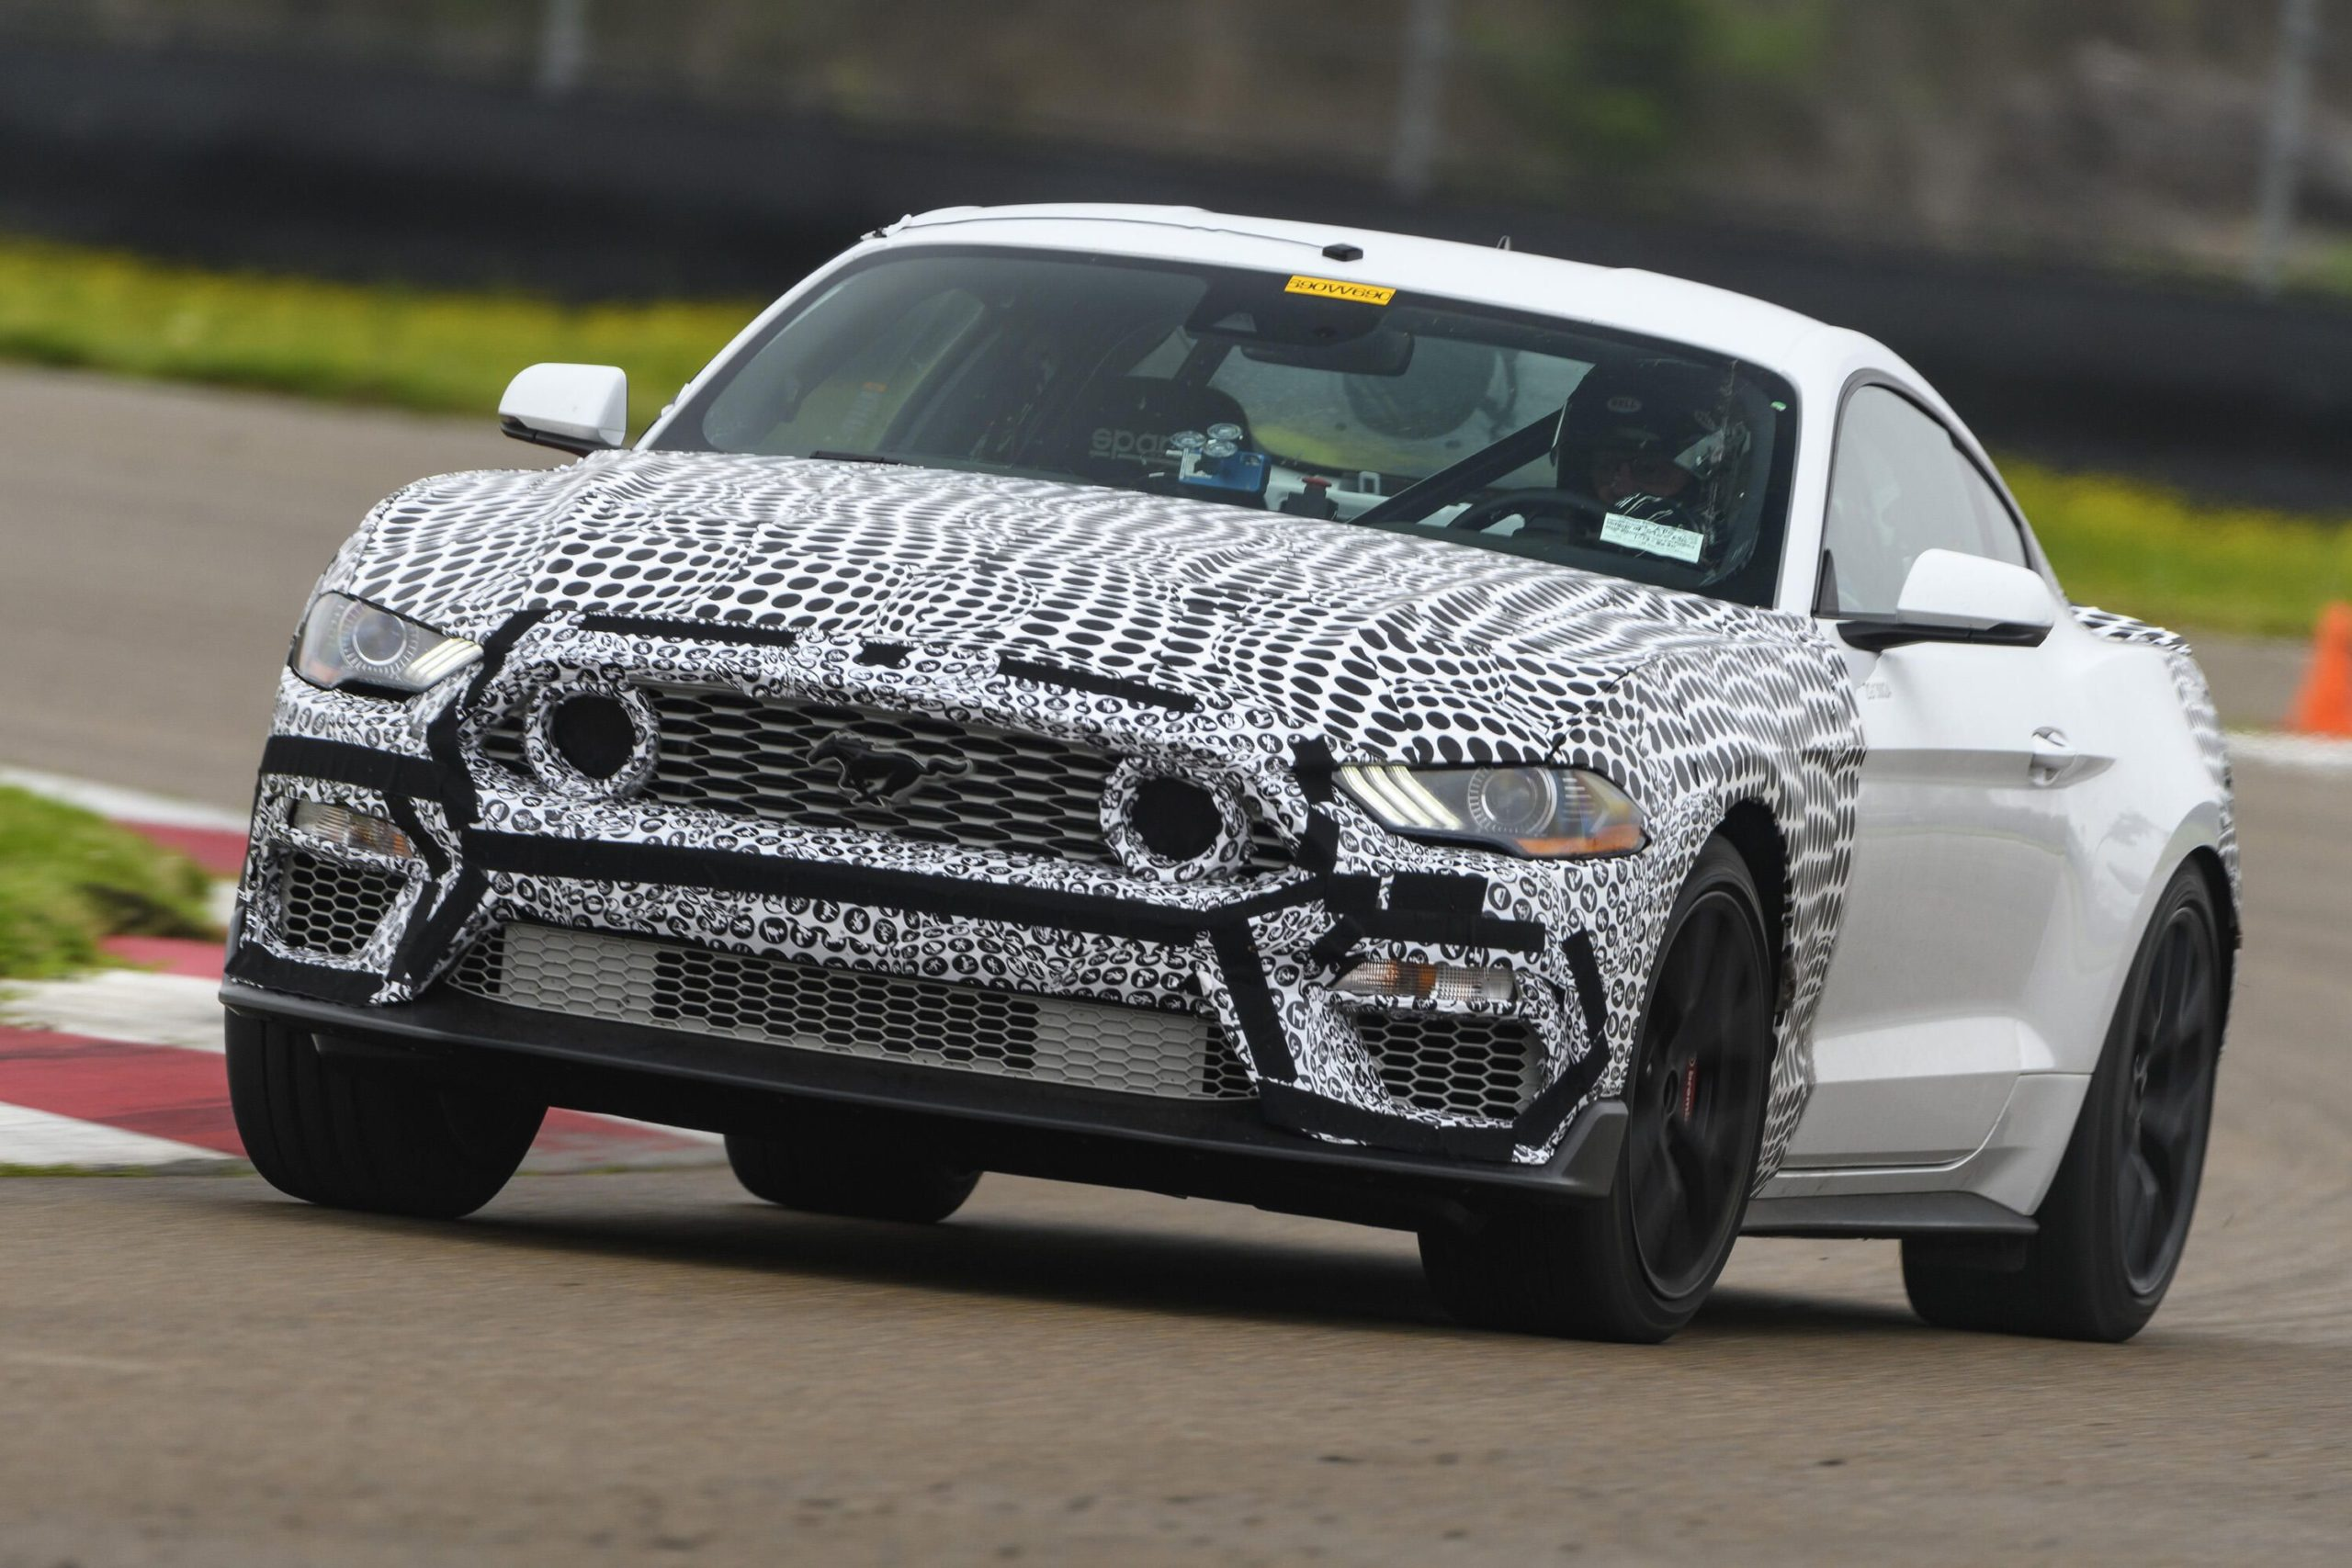 2021 Ford Mustang Mach 1 brings back the historic badge